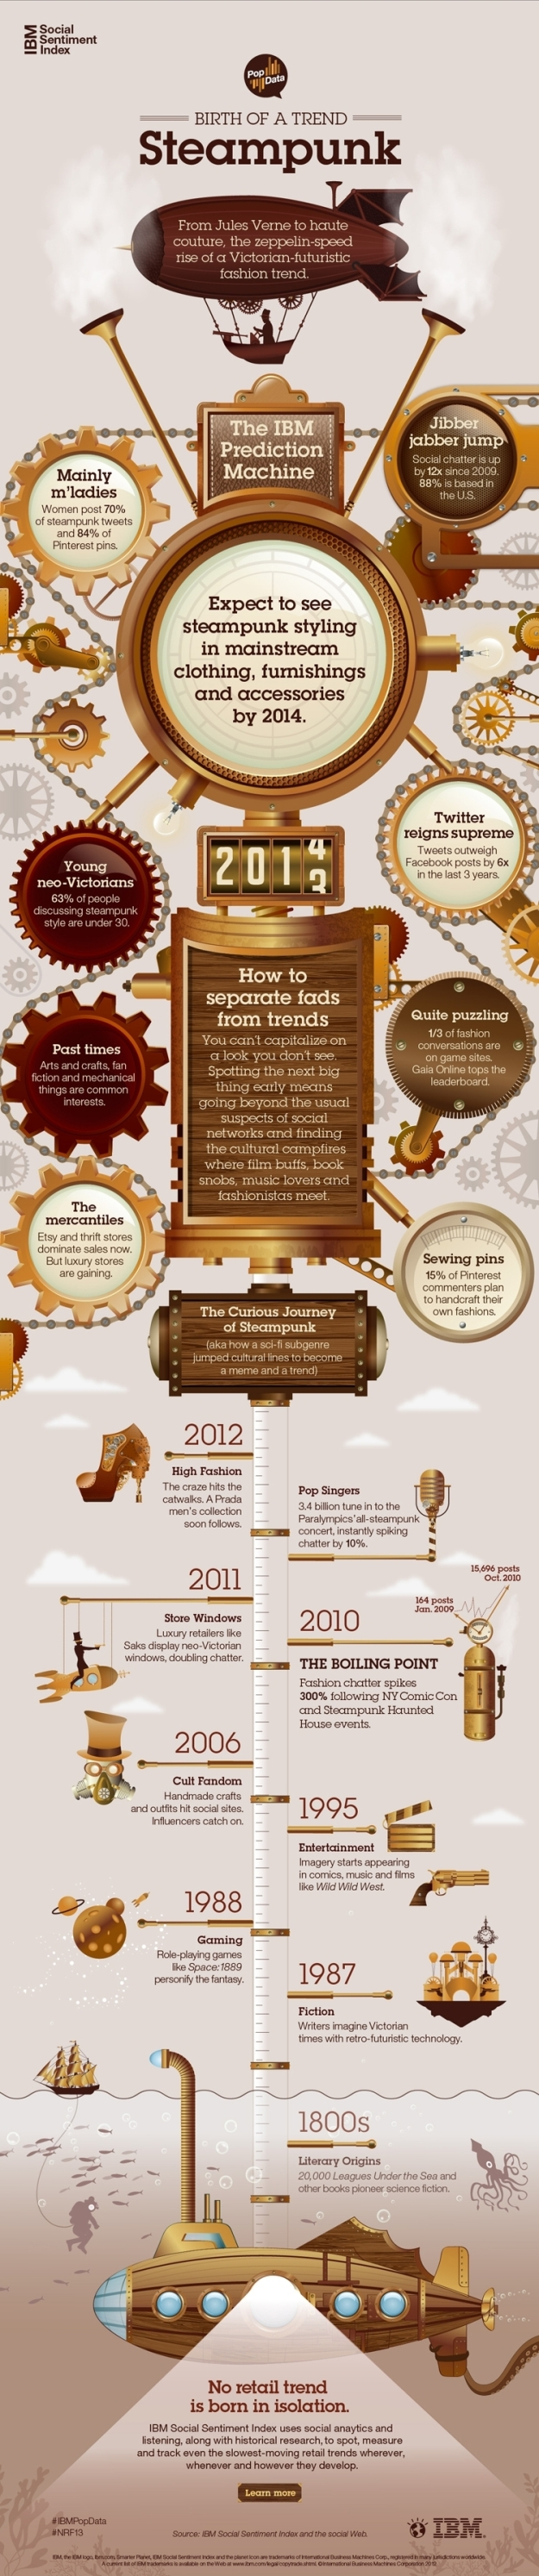 IBM Predicts Steampunk Will Be The Major Fashion Trend Of 2013